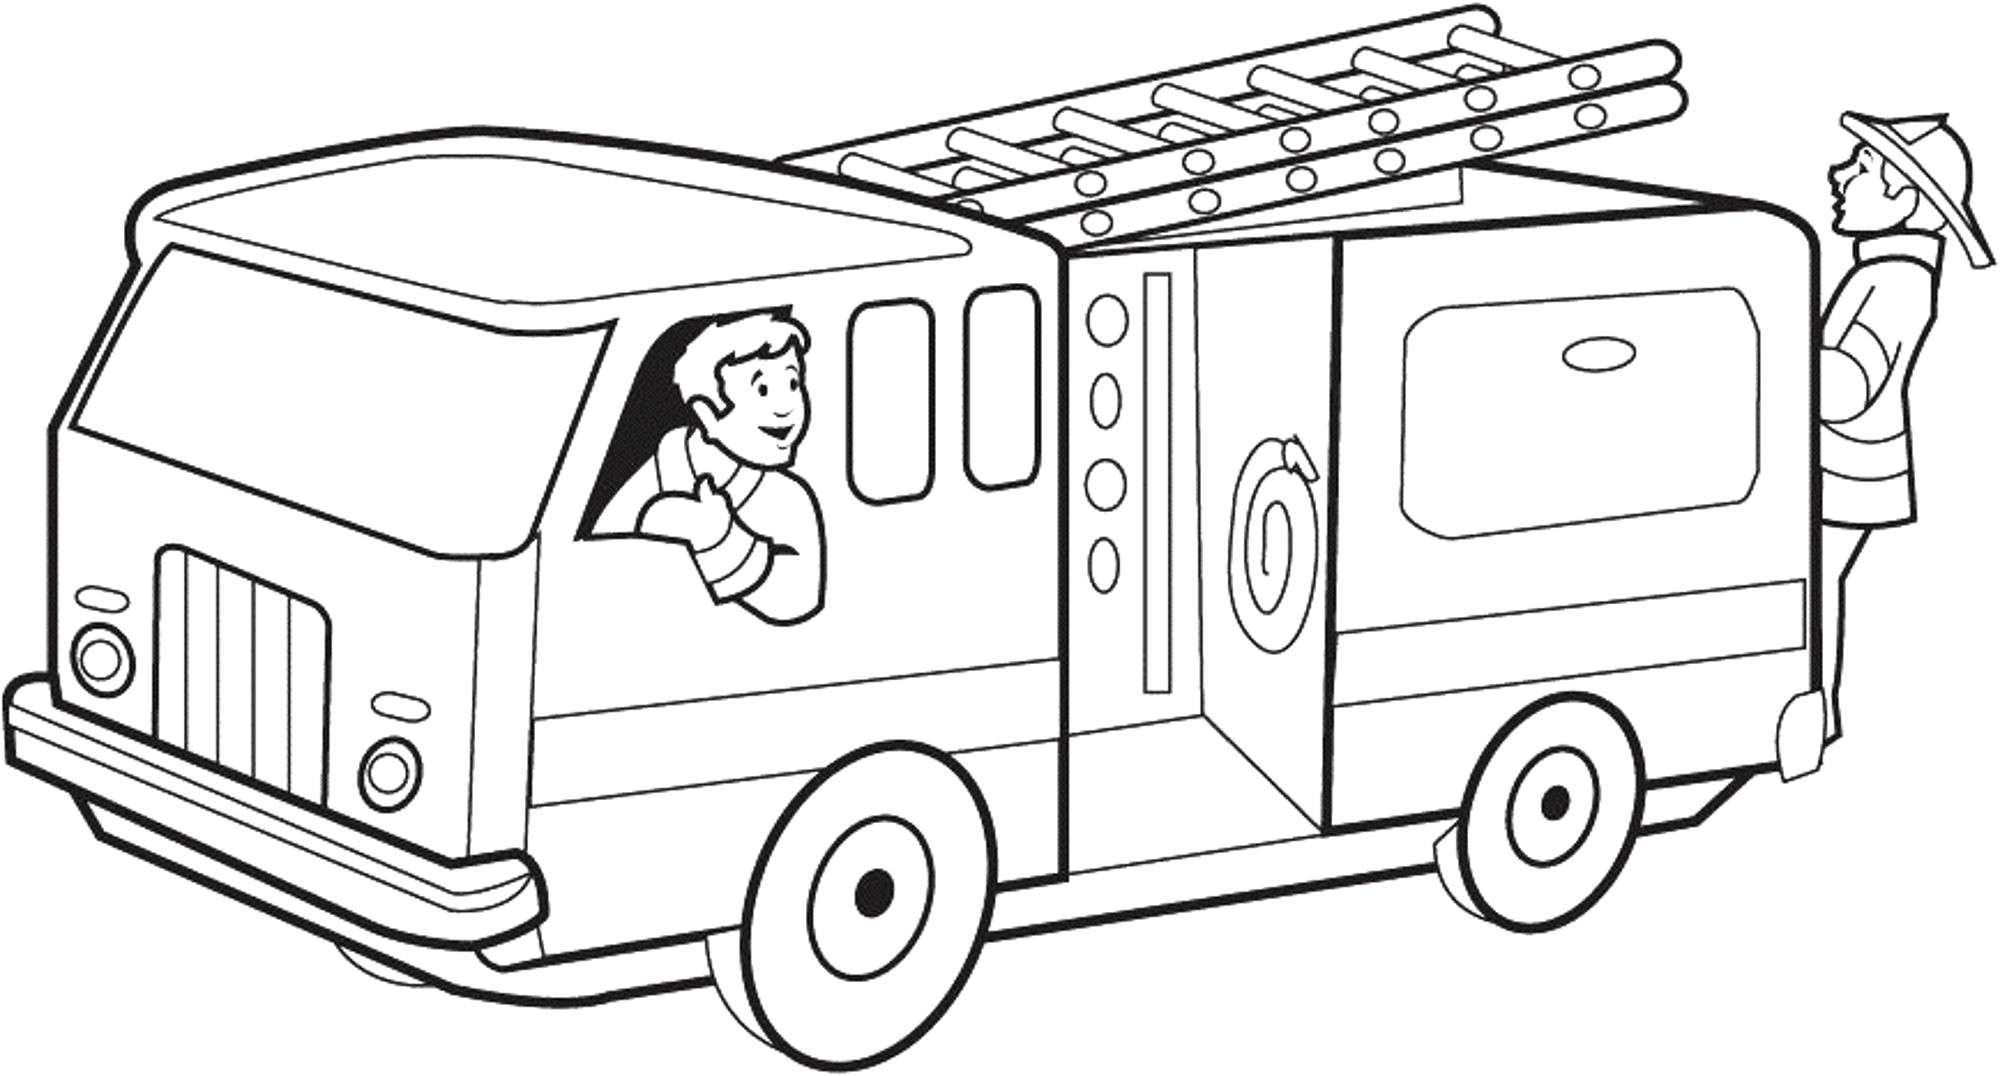 Fire truck clipart black and white 6 » Clipart Station.